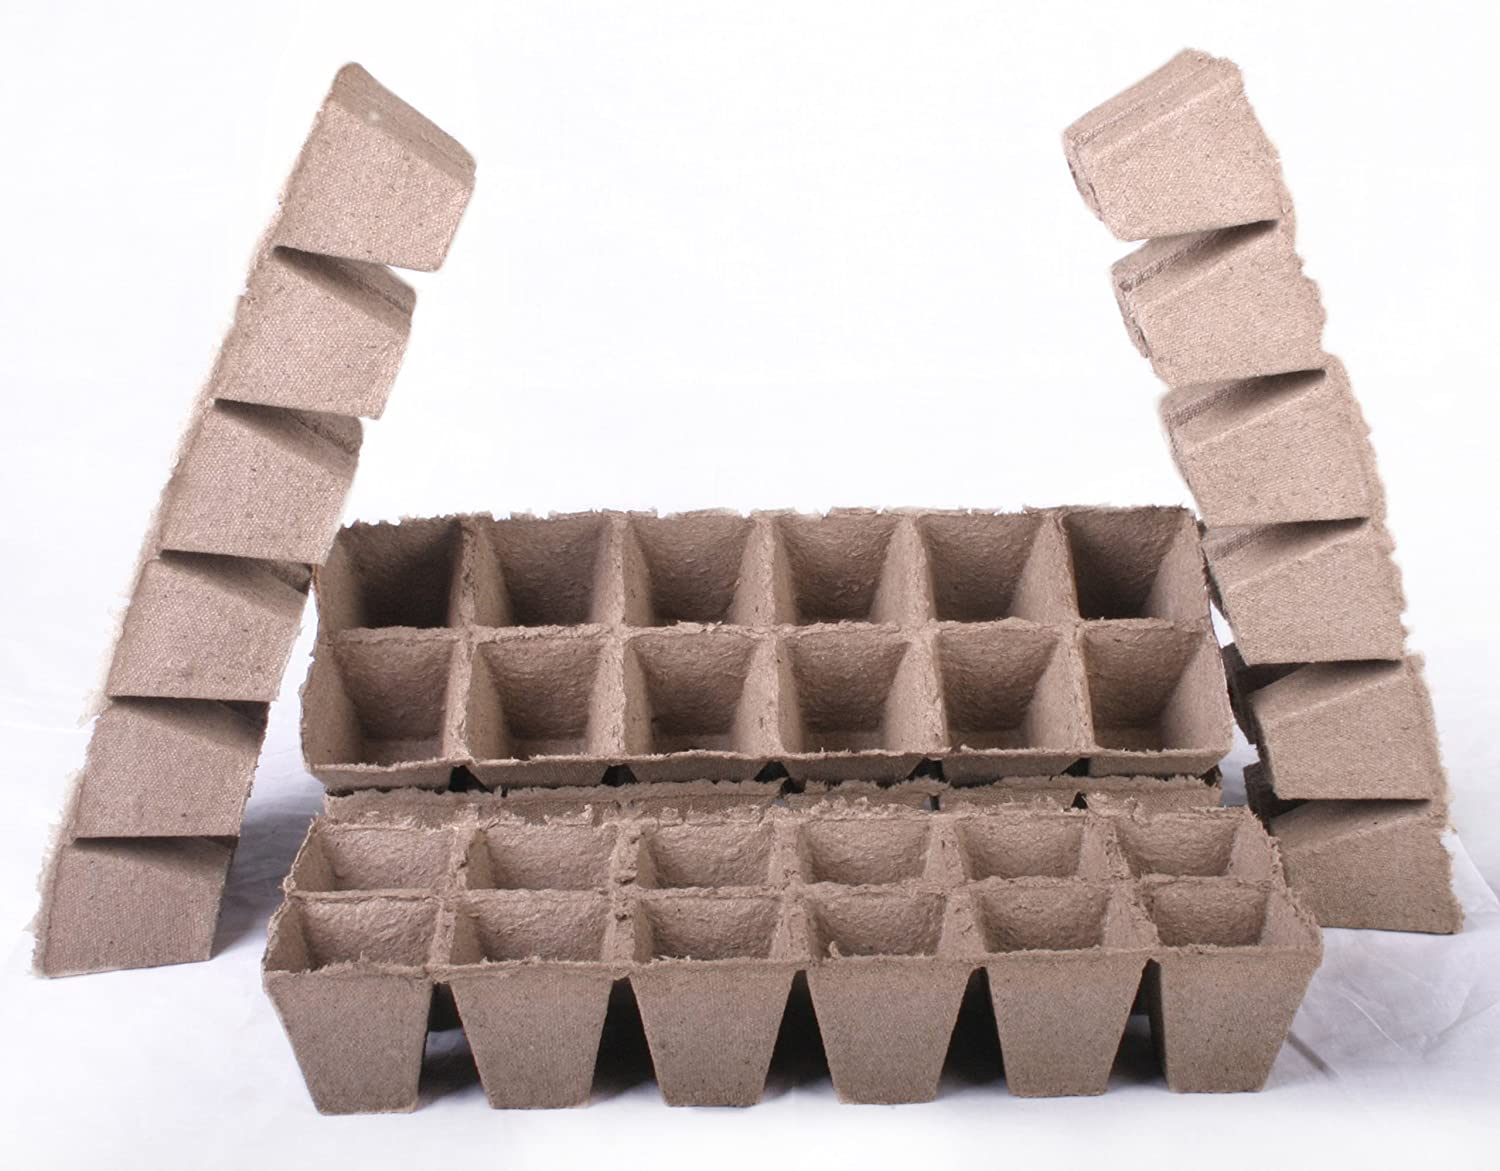 48 NEW Square Jiffy Peat Pots Size 2.25×2.25 – Strips Pots Are 2.25 Inch Square At the Top and 2.25 Inch Deep.